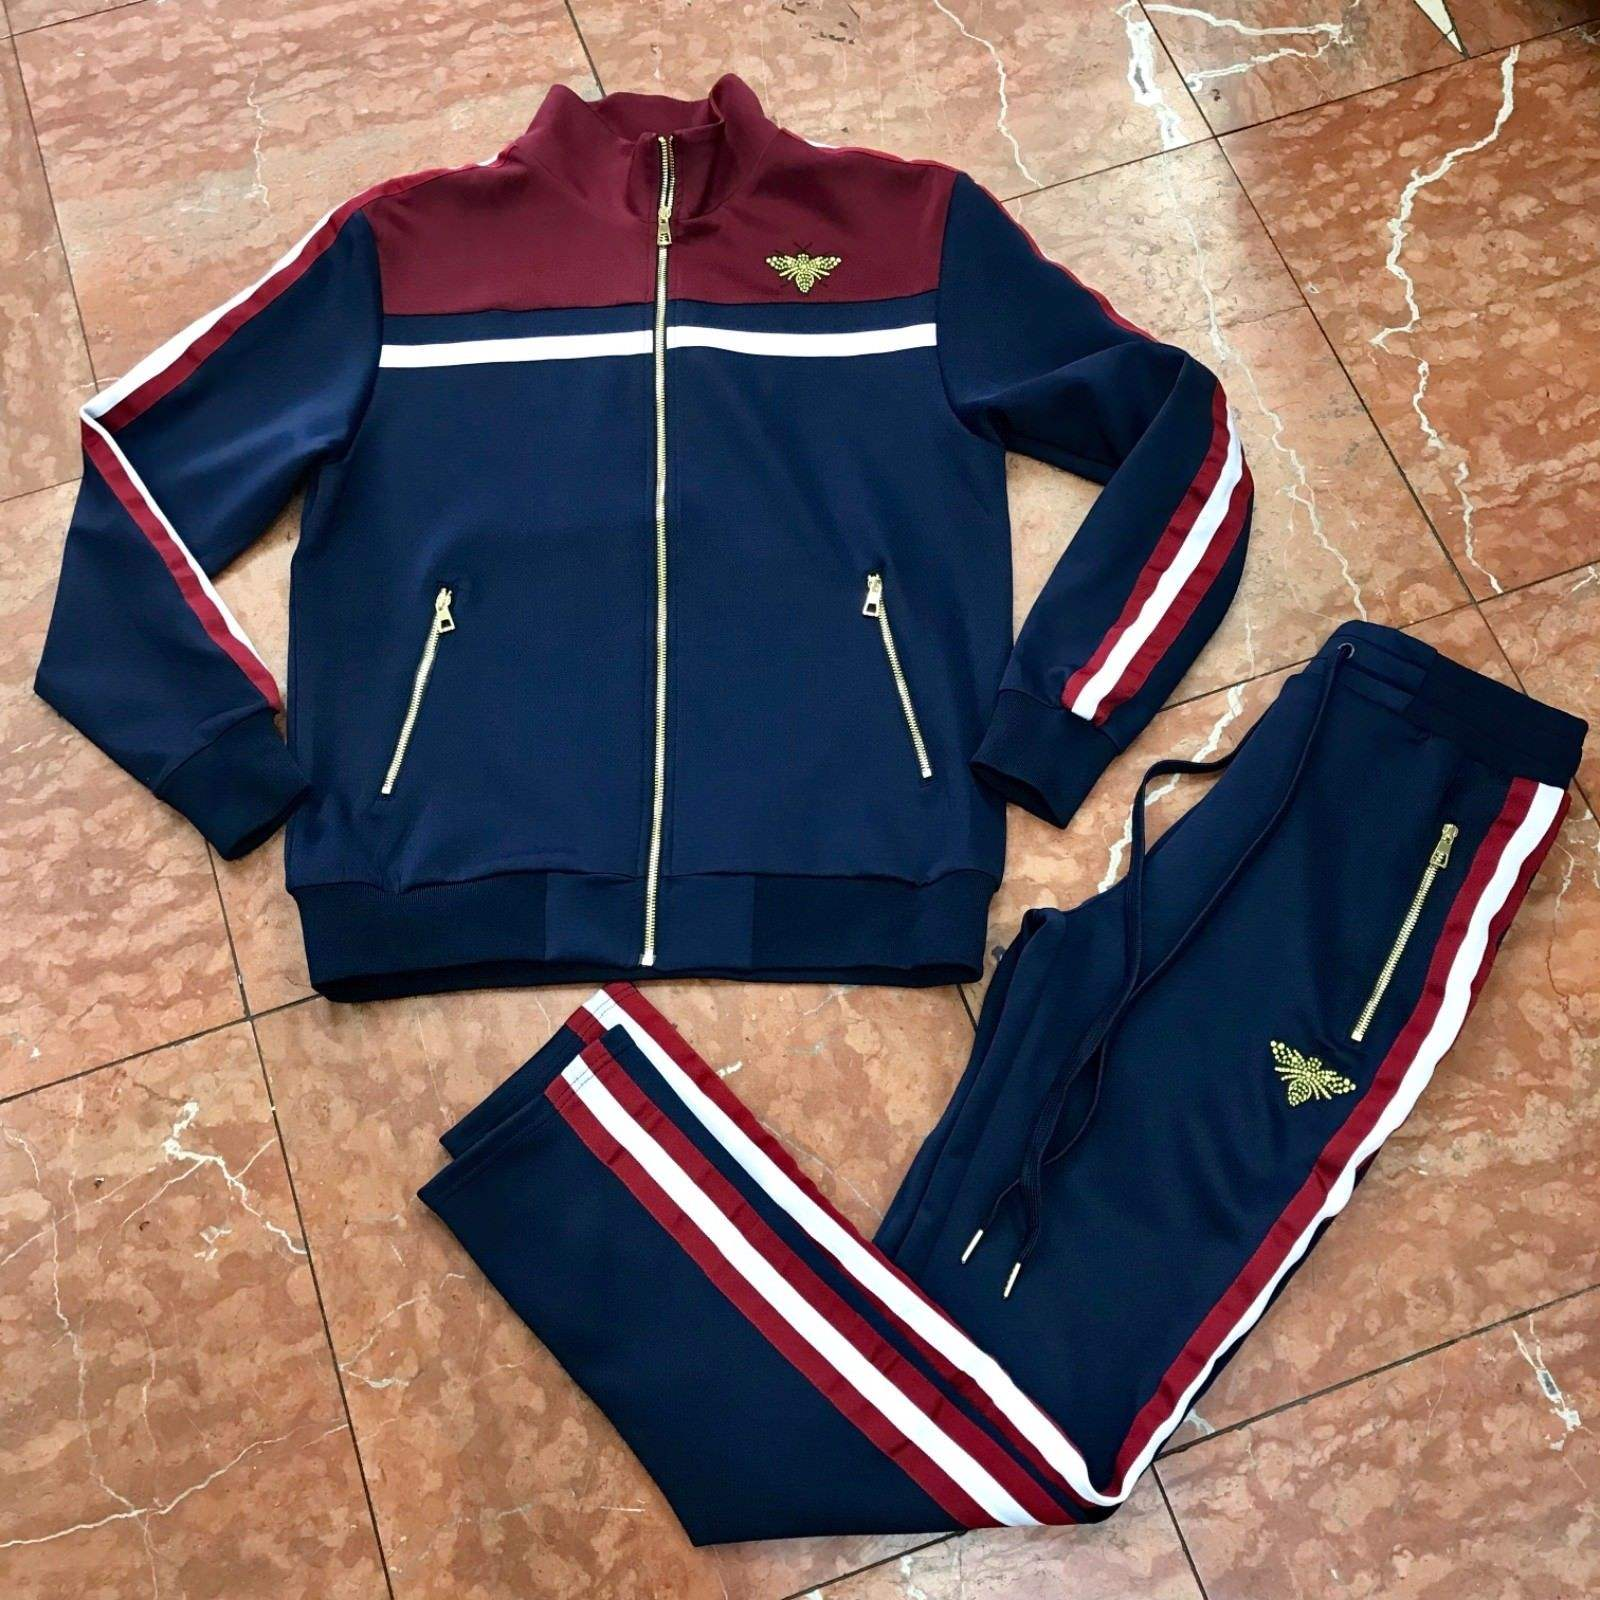 Logo Design Printed Sweatsuit/ High Quality Full Customization Tracksuit/Wholesale Custom Brand Jogging Suit